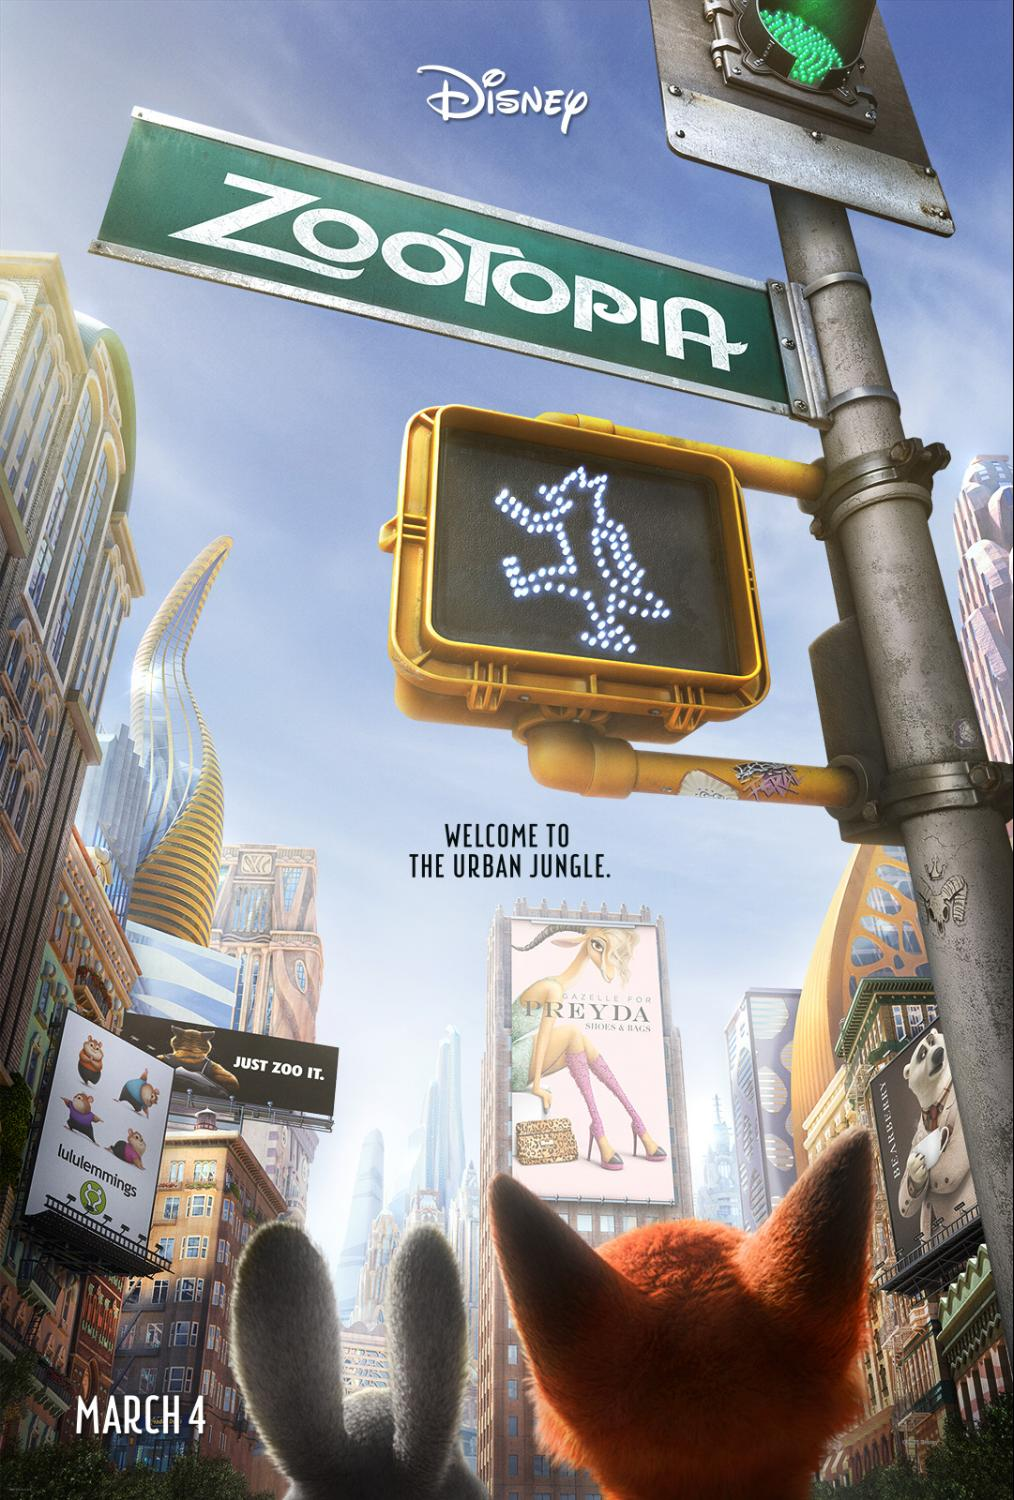 Should You Check Out Disneys New Film Zootopia